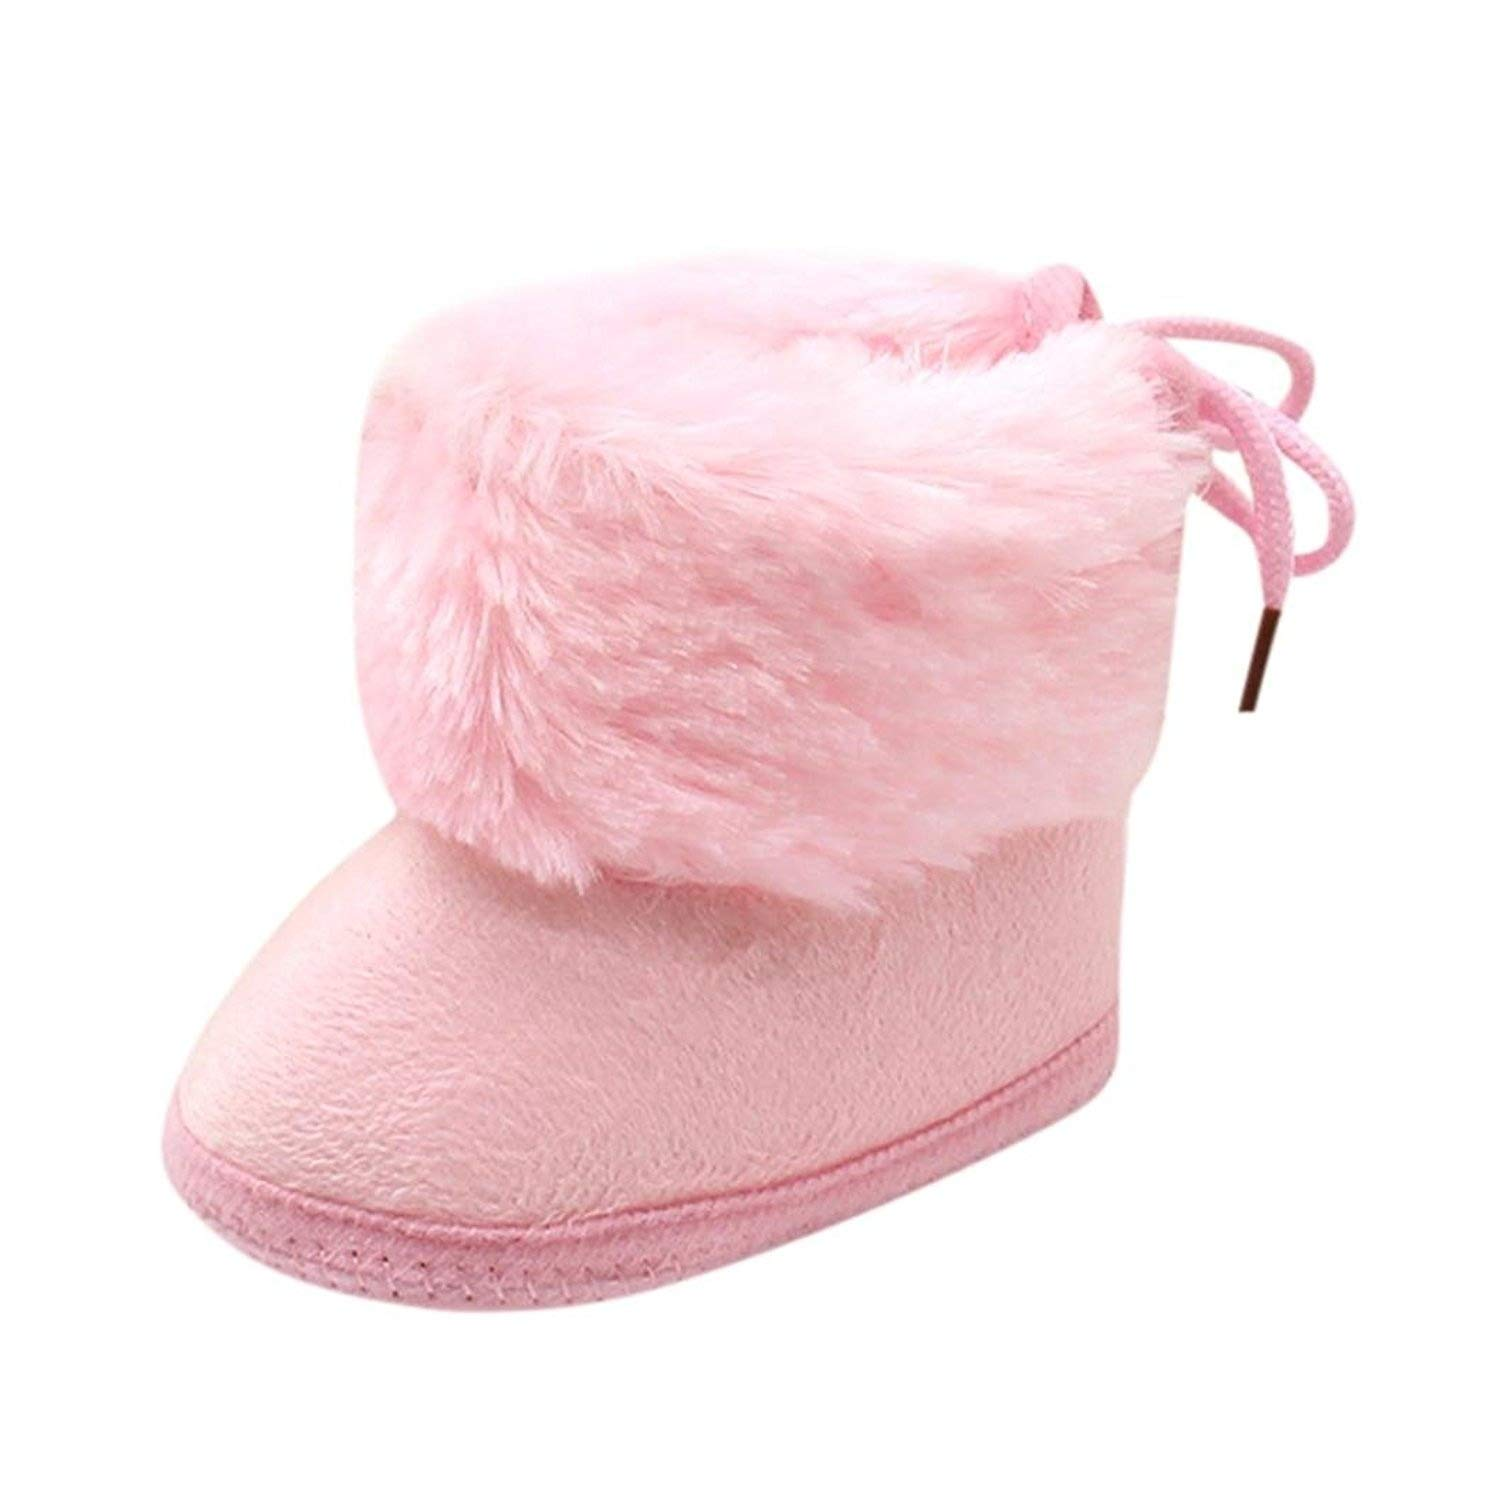 Colorful TM Baby Girls Boys Soft Booties Snow Boots Infant Toddler Newborn Winter Warm Shoes CF